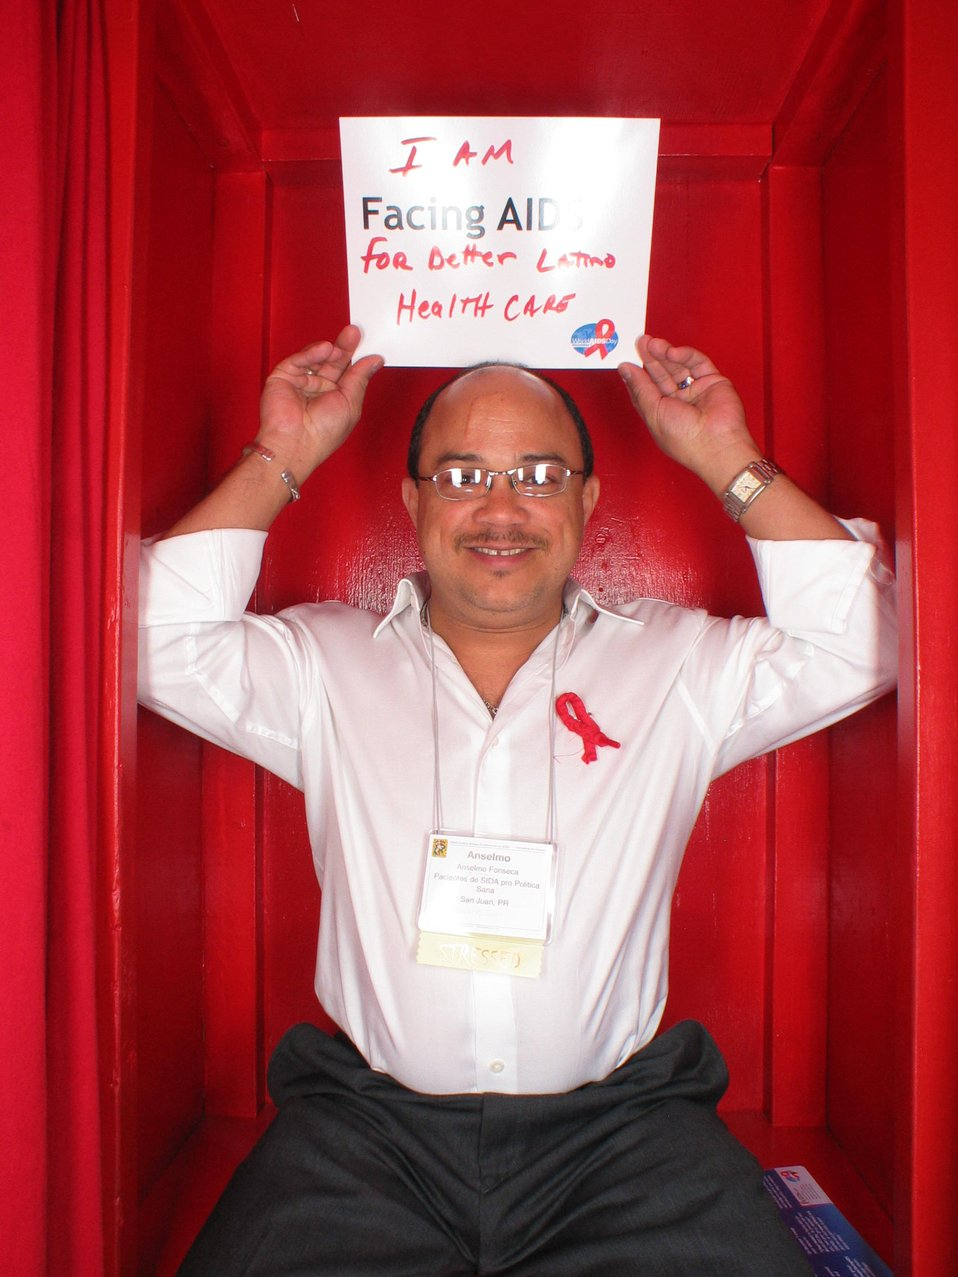 I am Facing AIDS for better Latino Health Care.